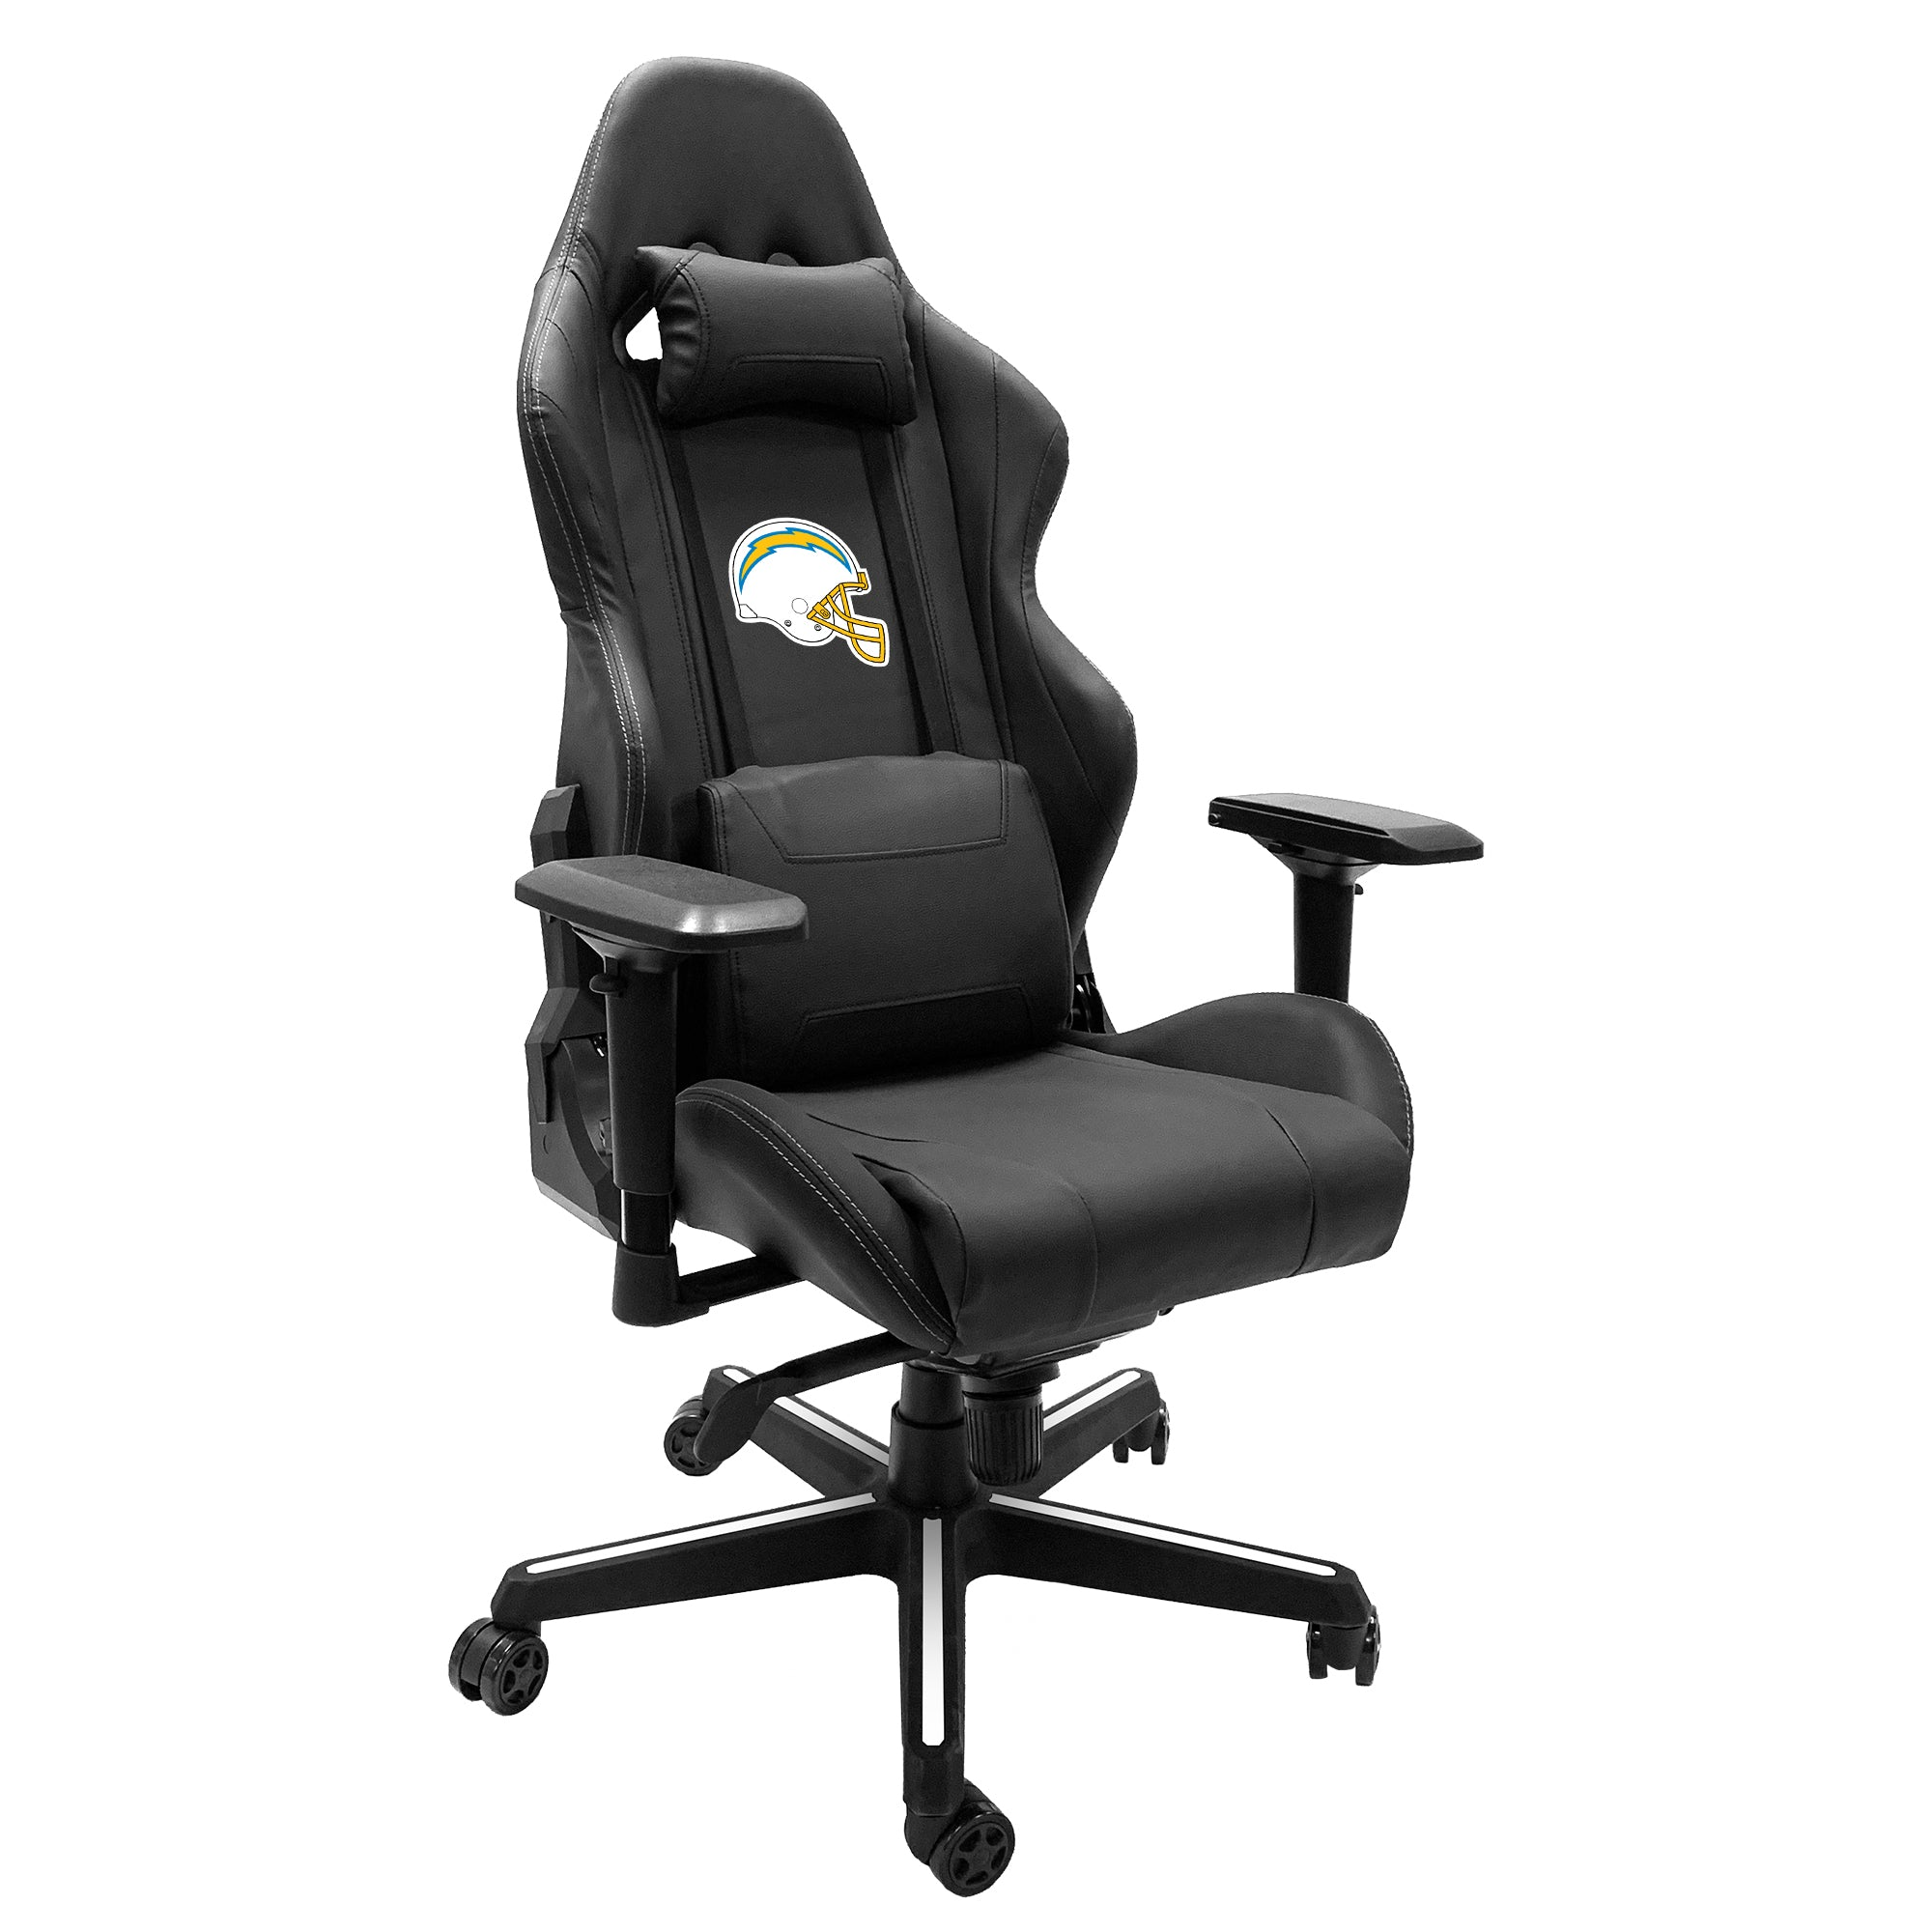 Xpression Gaming Chair with  Los Angeles Chargers Helmet Logo